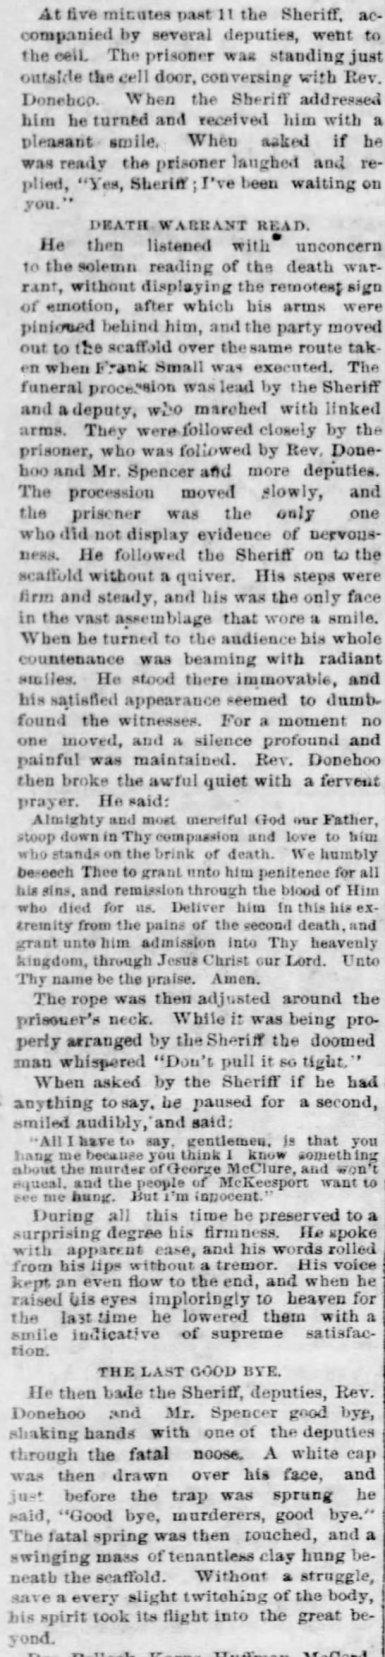 Pittsburgh Daily Post, May 11, 1883